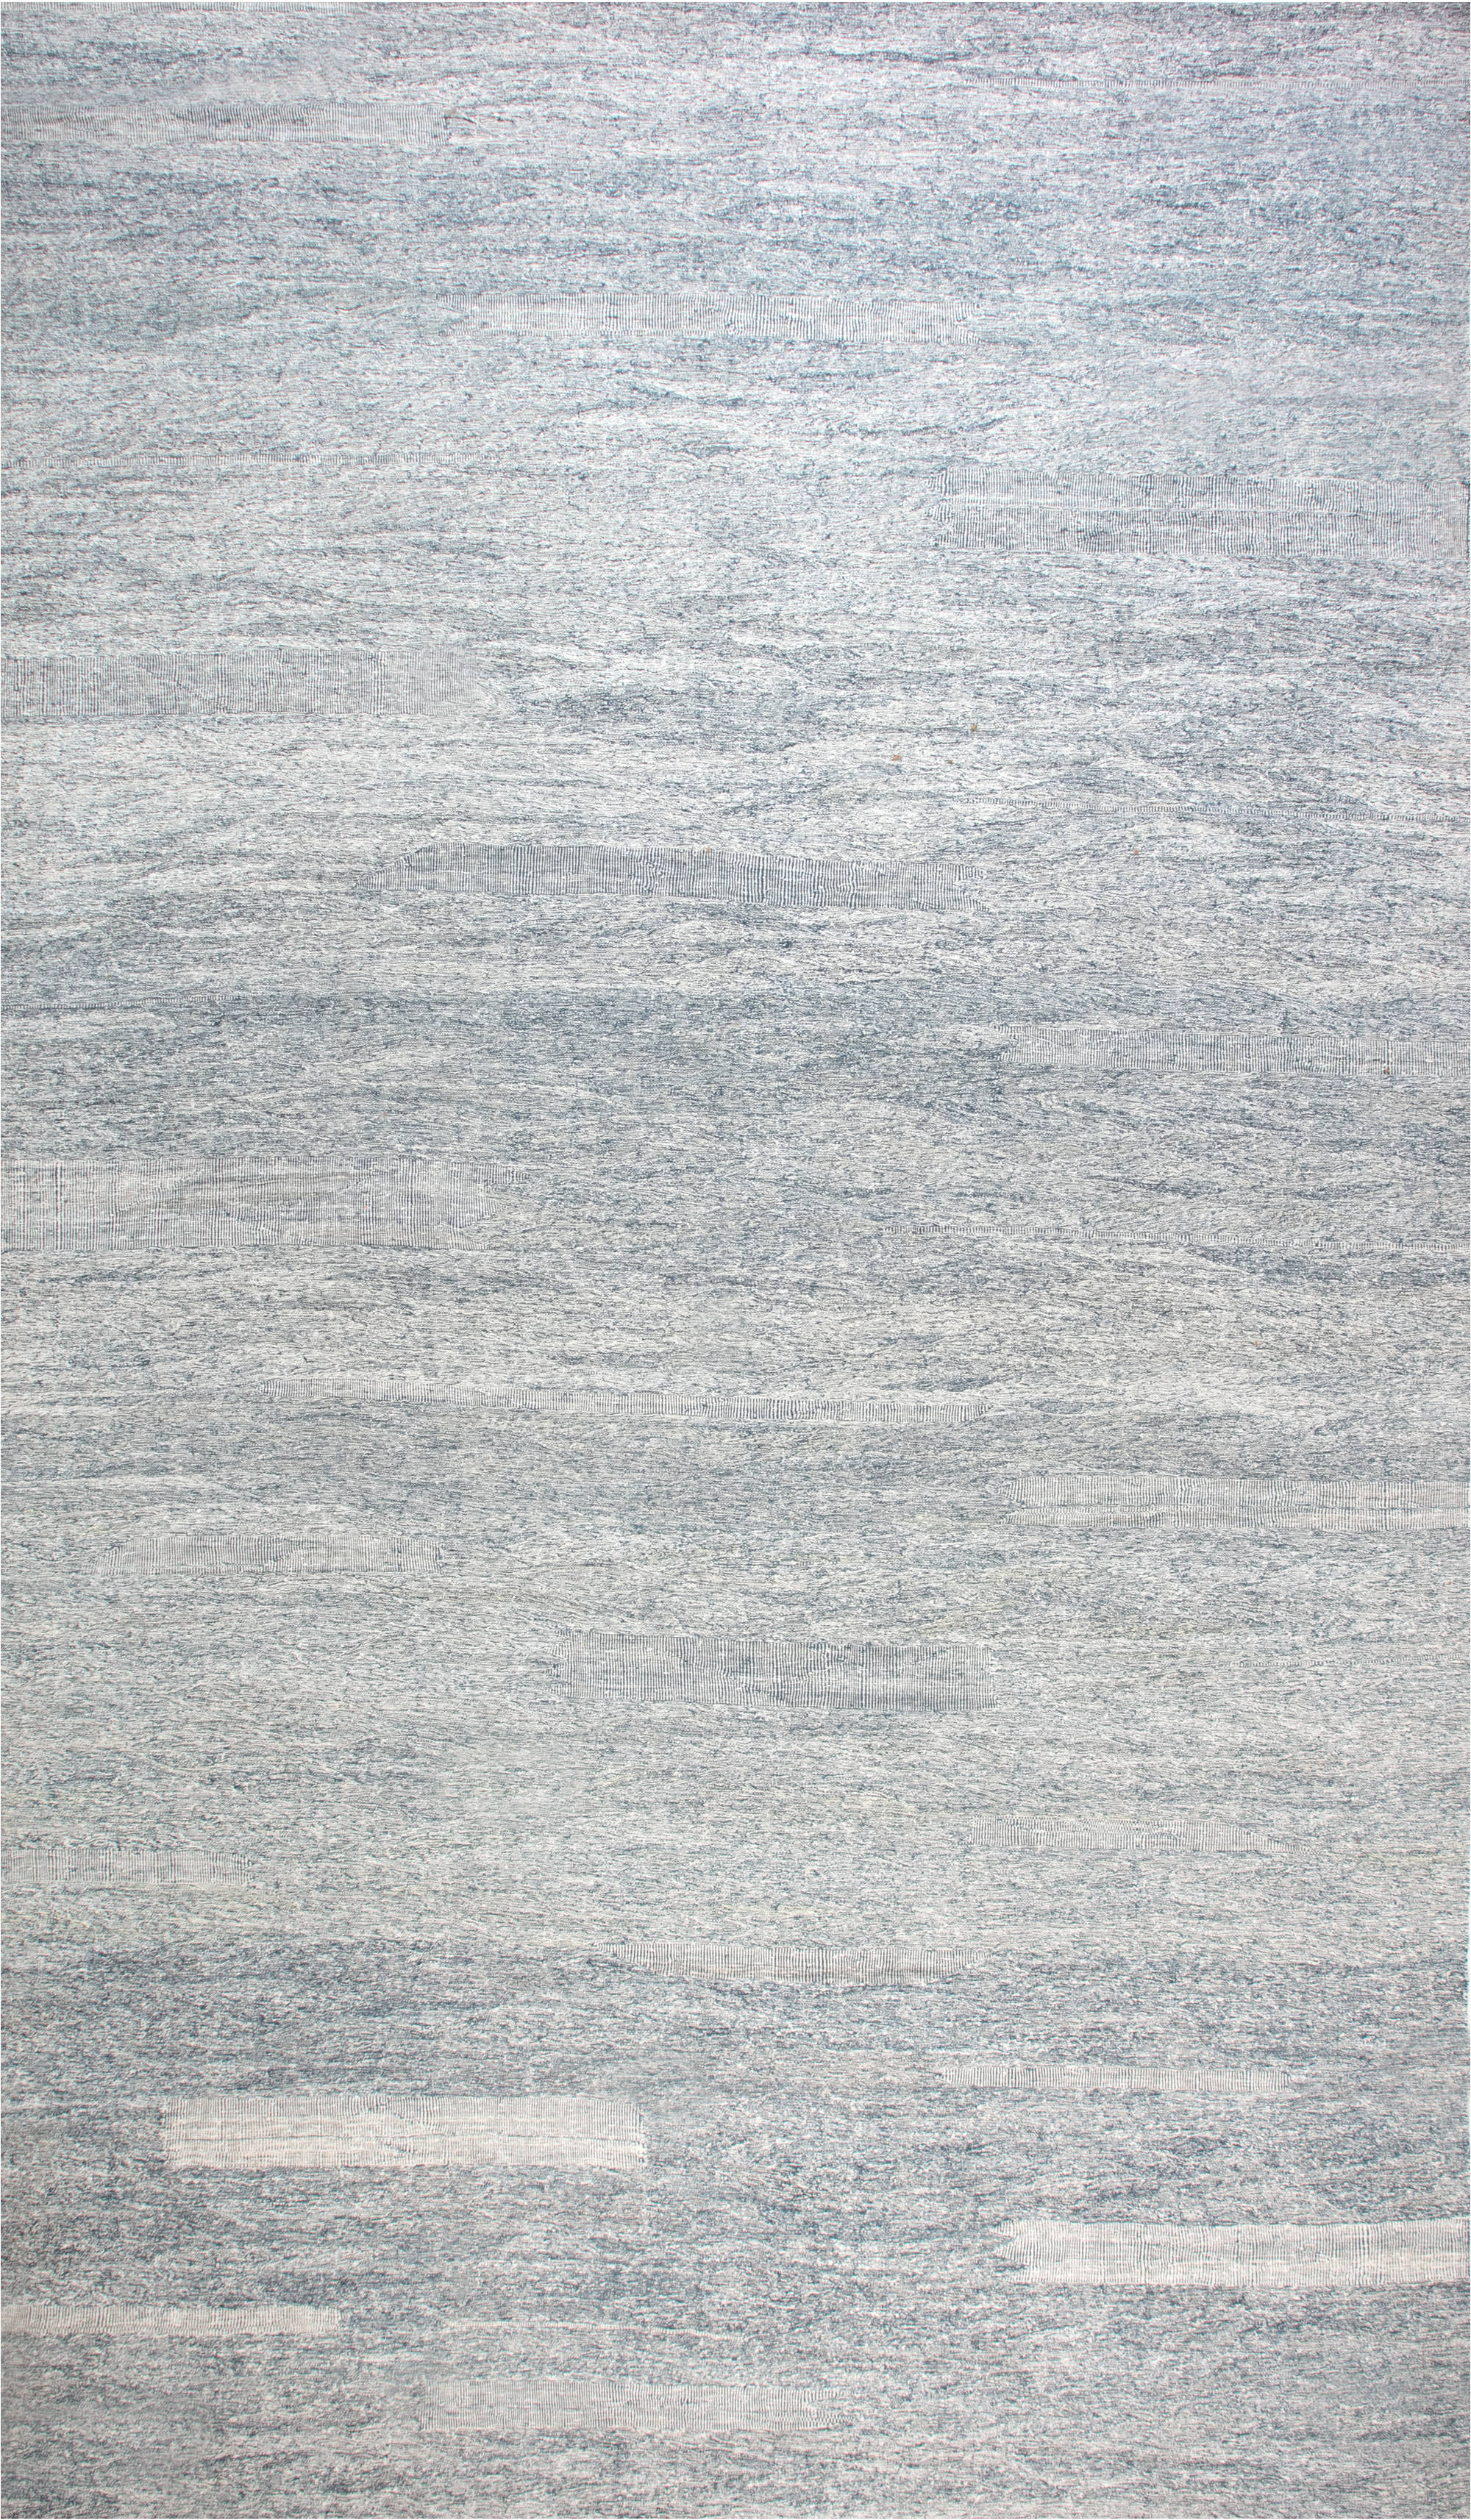 Contemporary Flat Weave Rug N11991